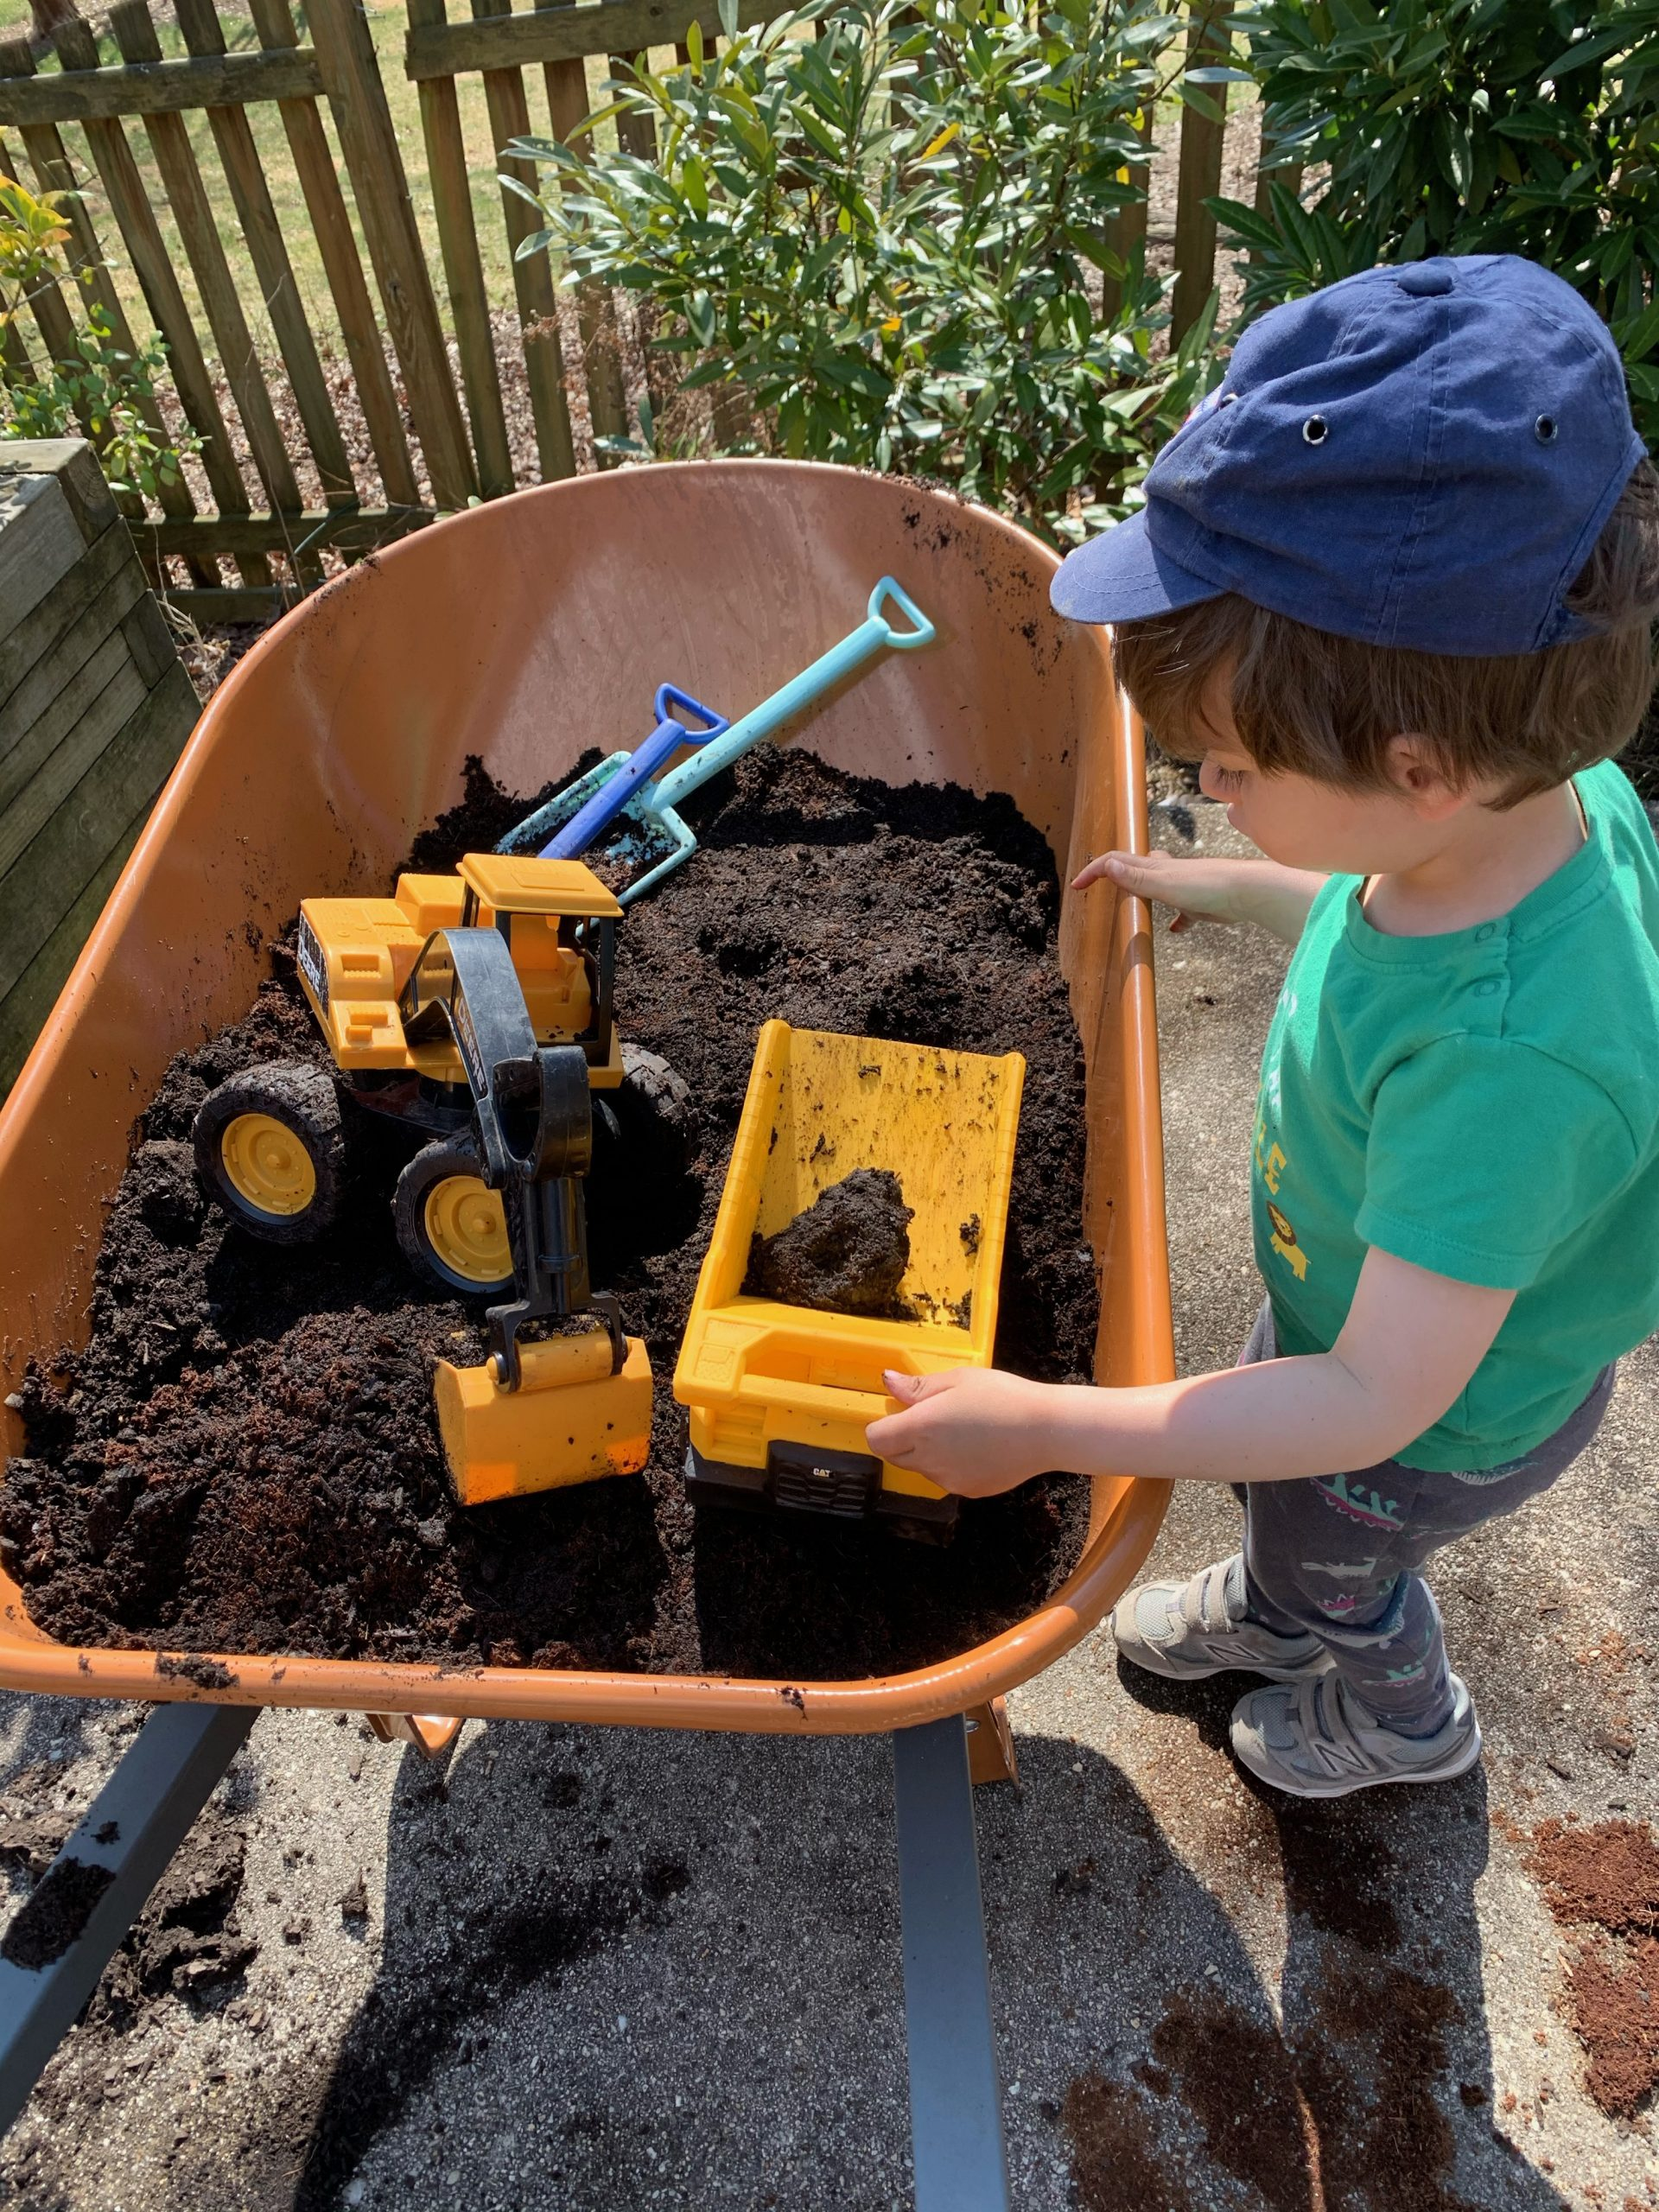 A young boy looks at his toys in a wheelbarrow full of dirt.